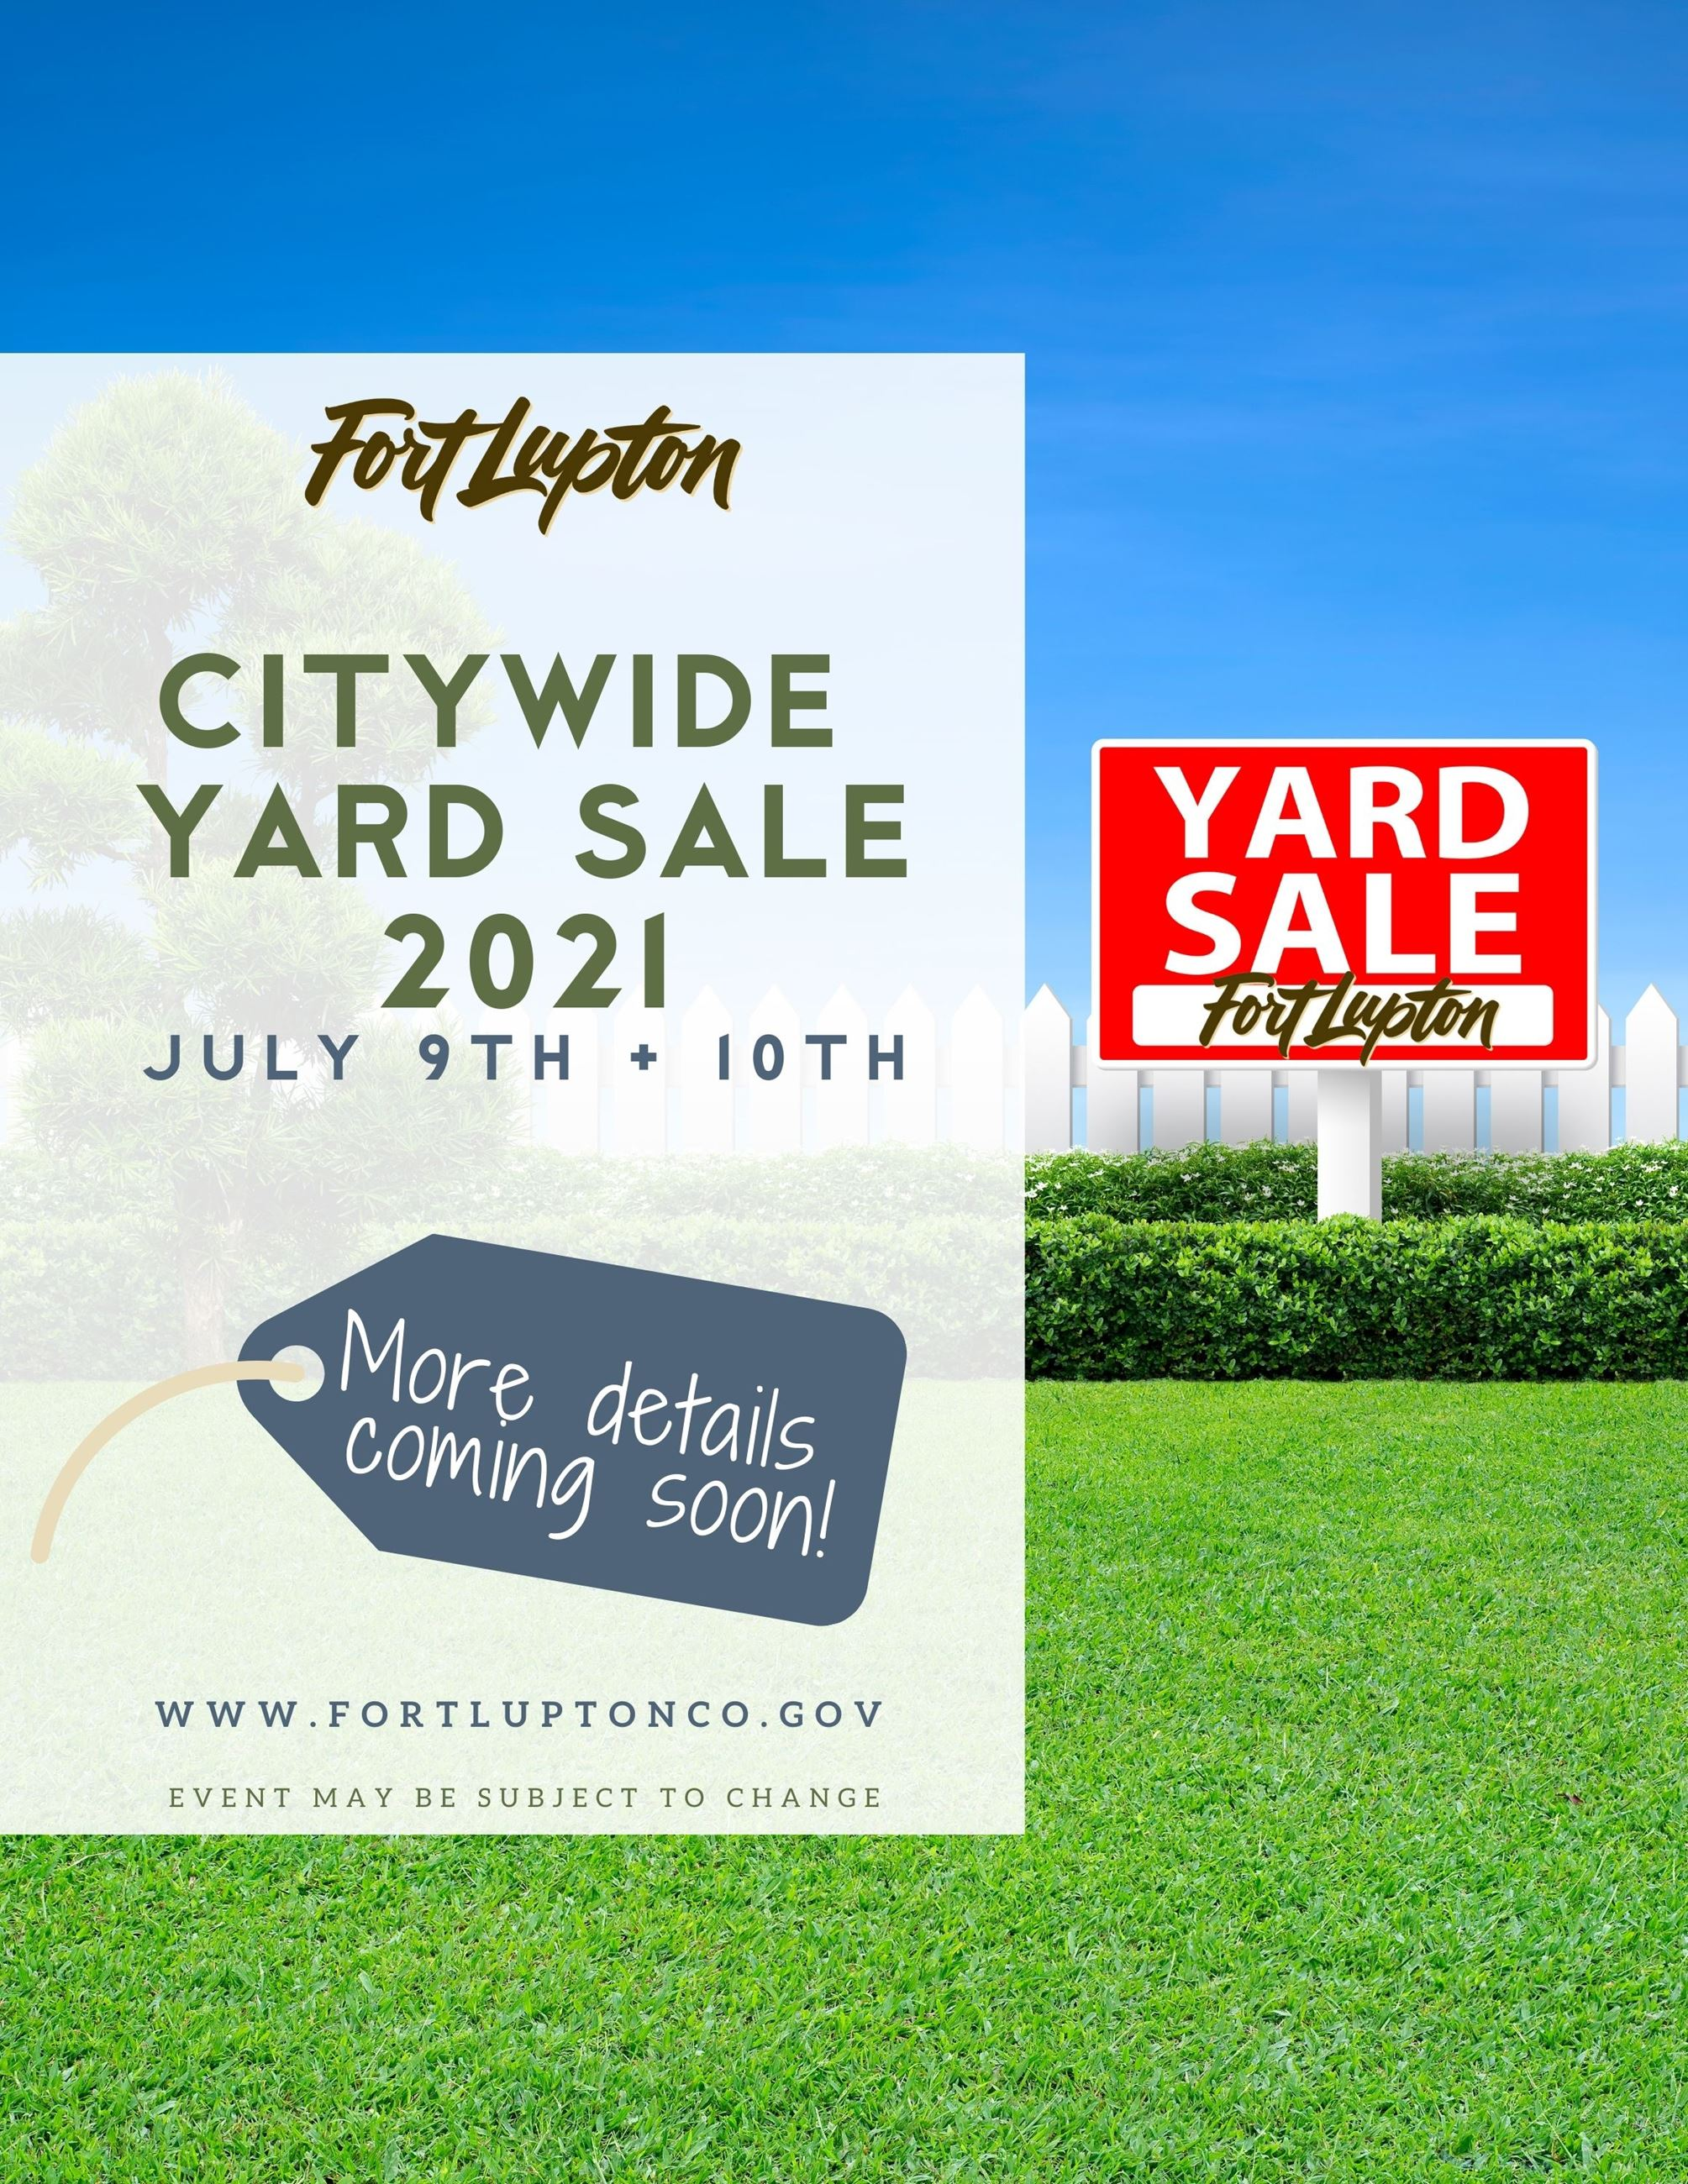 Citywide Yard Sale 2021 Save the Date